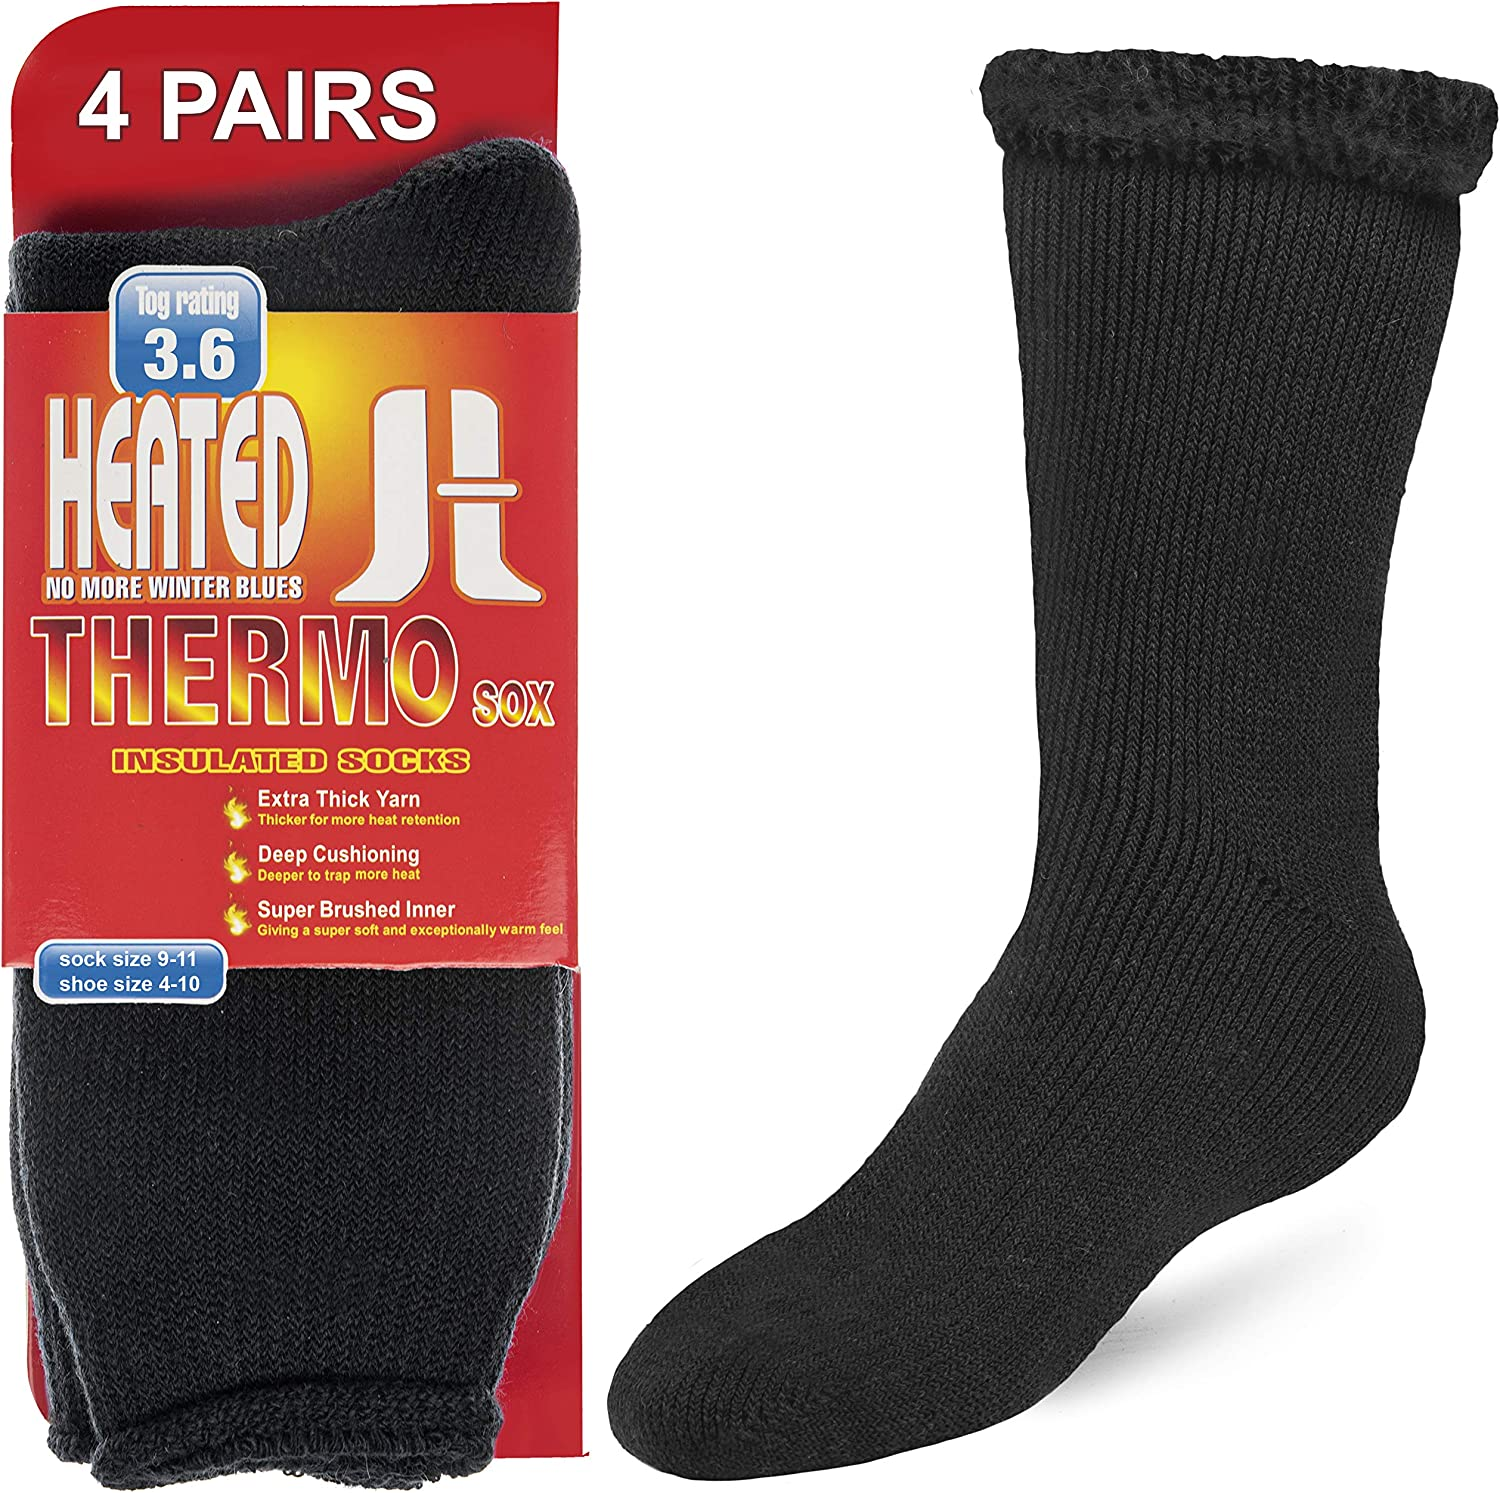 Thermal Socks For Men and Women Insulated Winter Socks for Extreme Cold Weathers Debra Weitzner 4/2 Pack